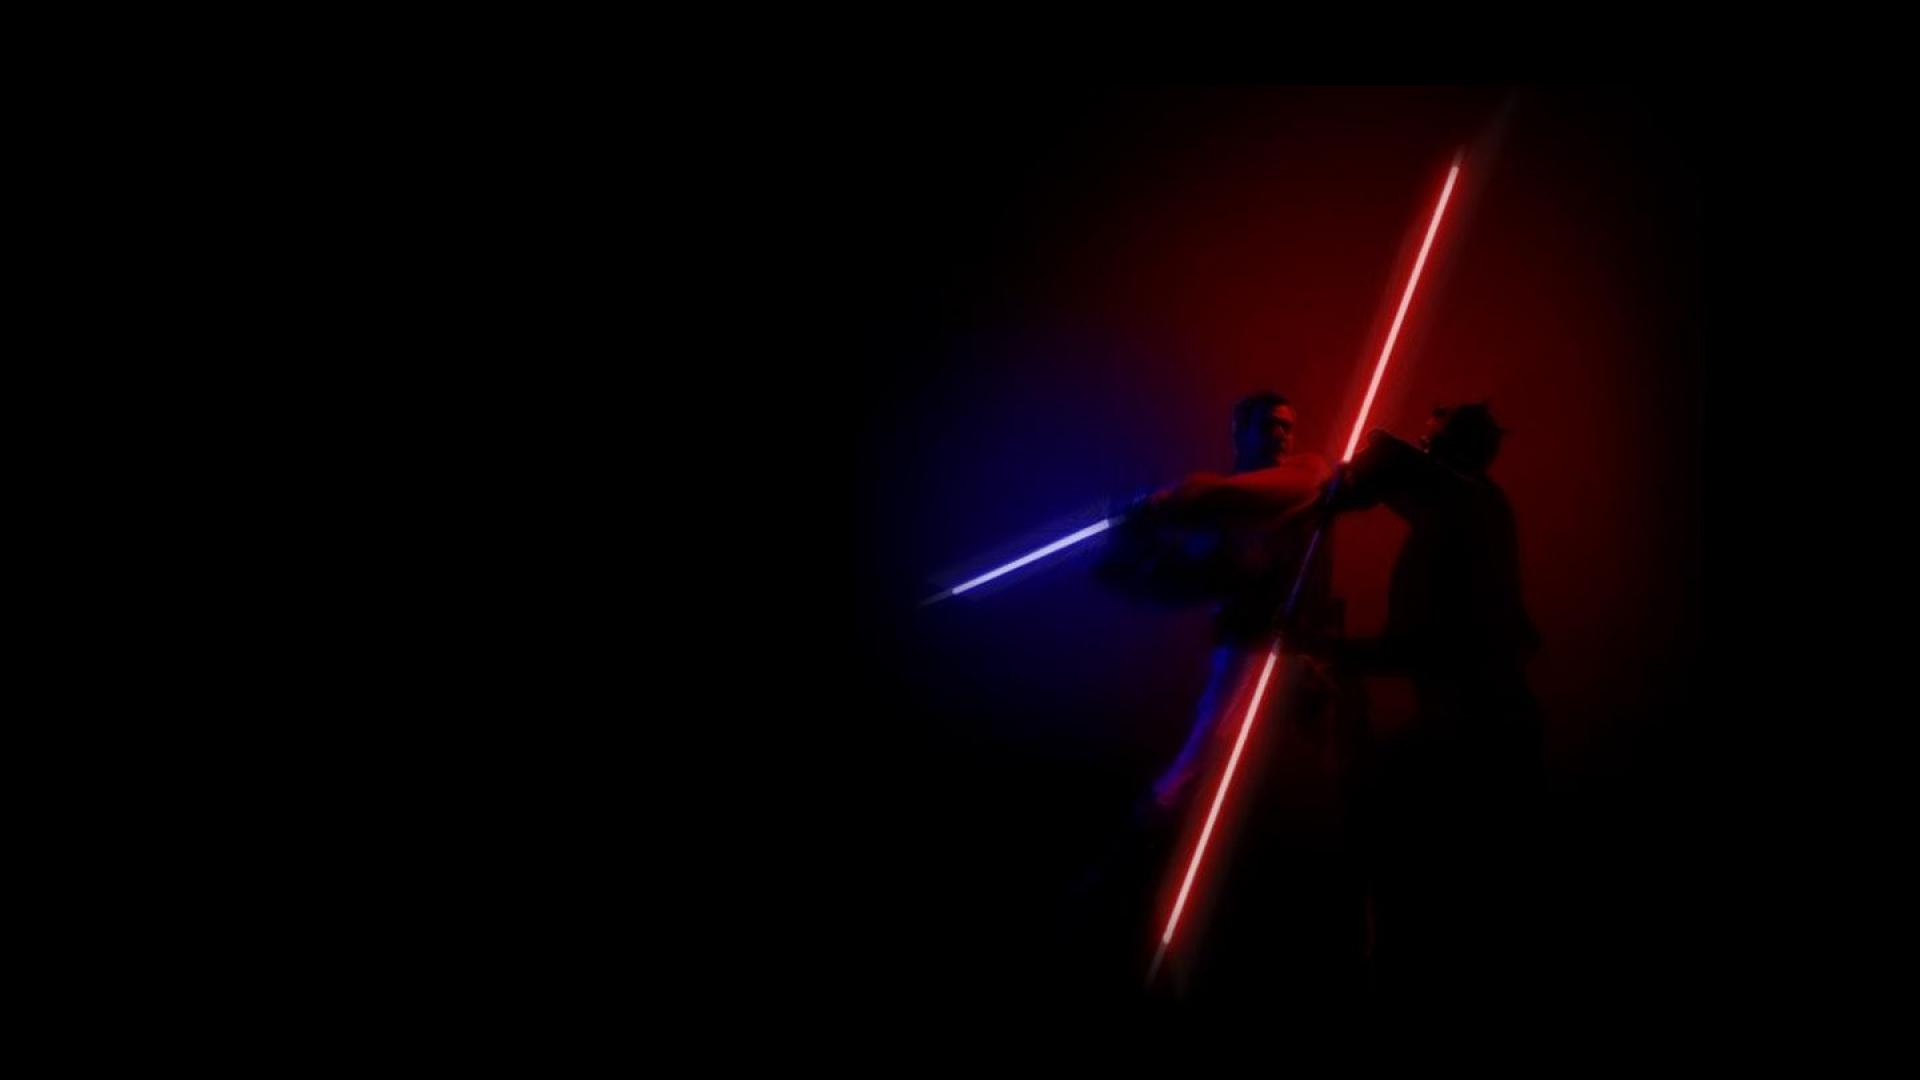 Star Wars High Definition Wallpaper Photos Download Jpg Png Gif Raw Tiff Psd Pdf And Watch Online